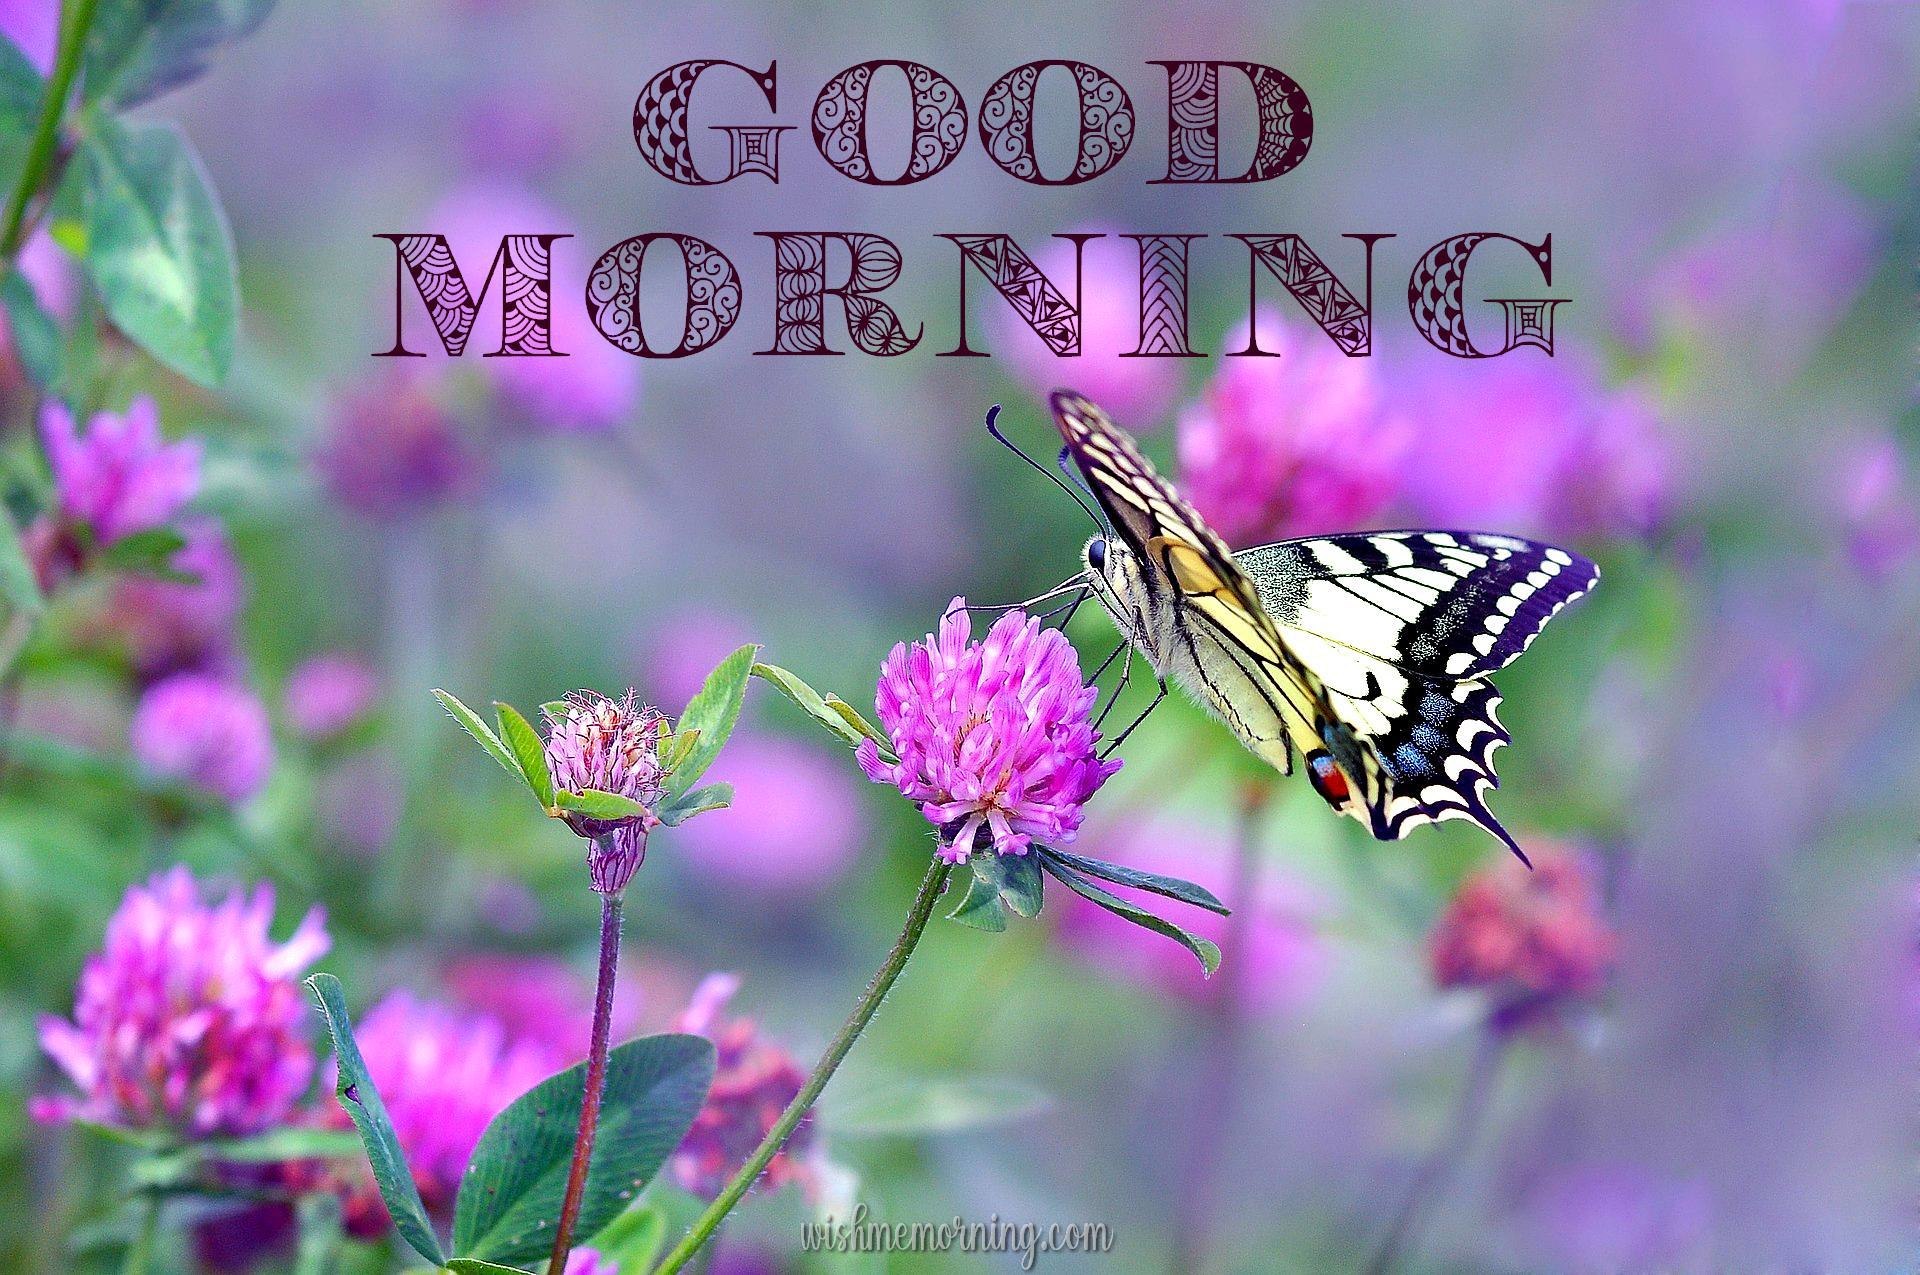 Beautiful Butterfly Good Morning Images wishmemorning.com 20